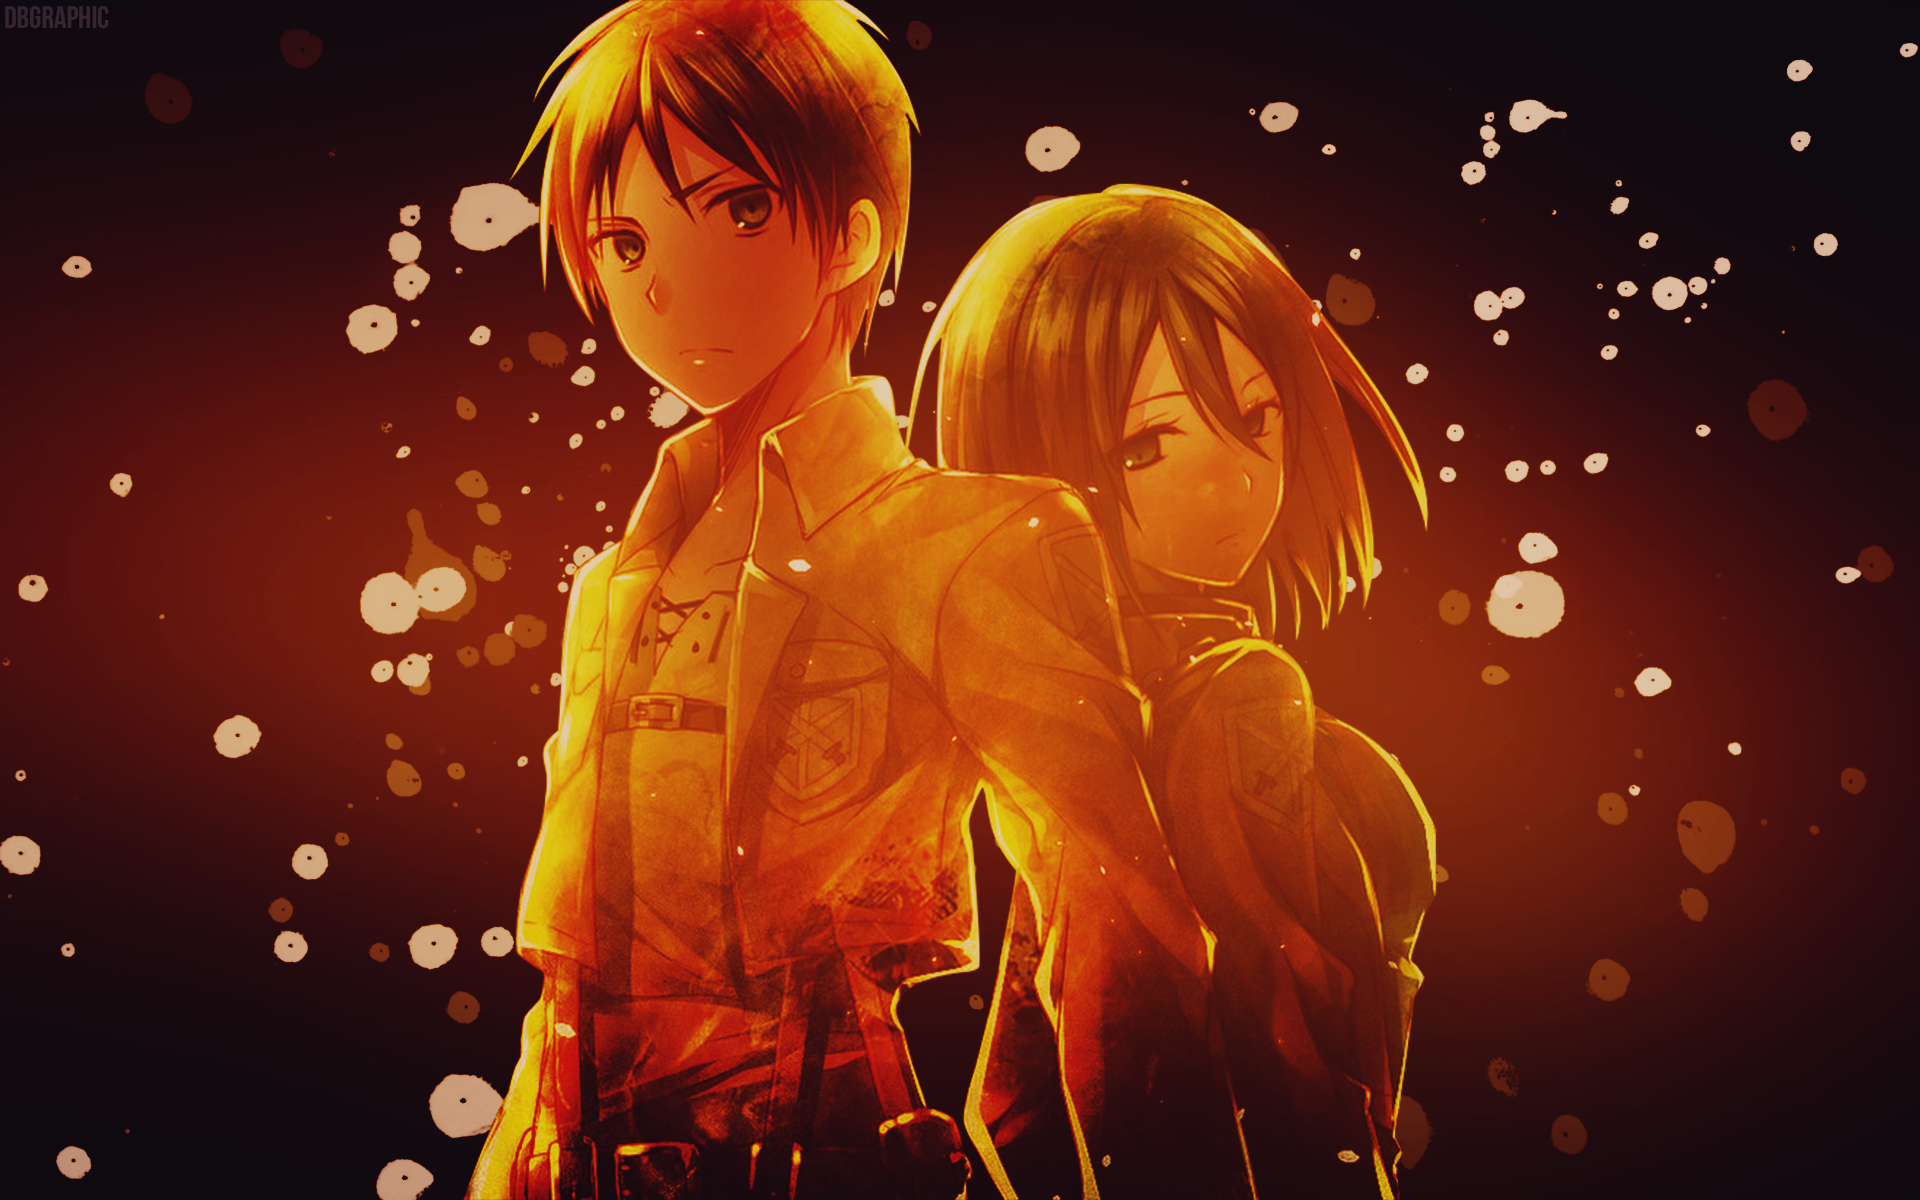 Shingeki No Kyojin Mikasa X Eren Wallpaper By Deathb00k On Deviantart